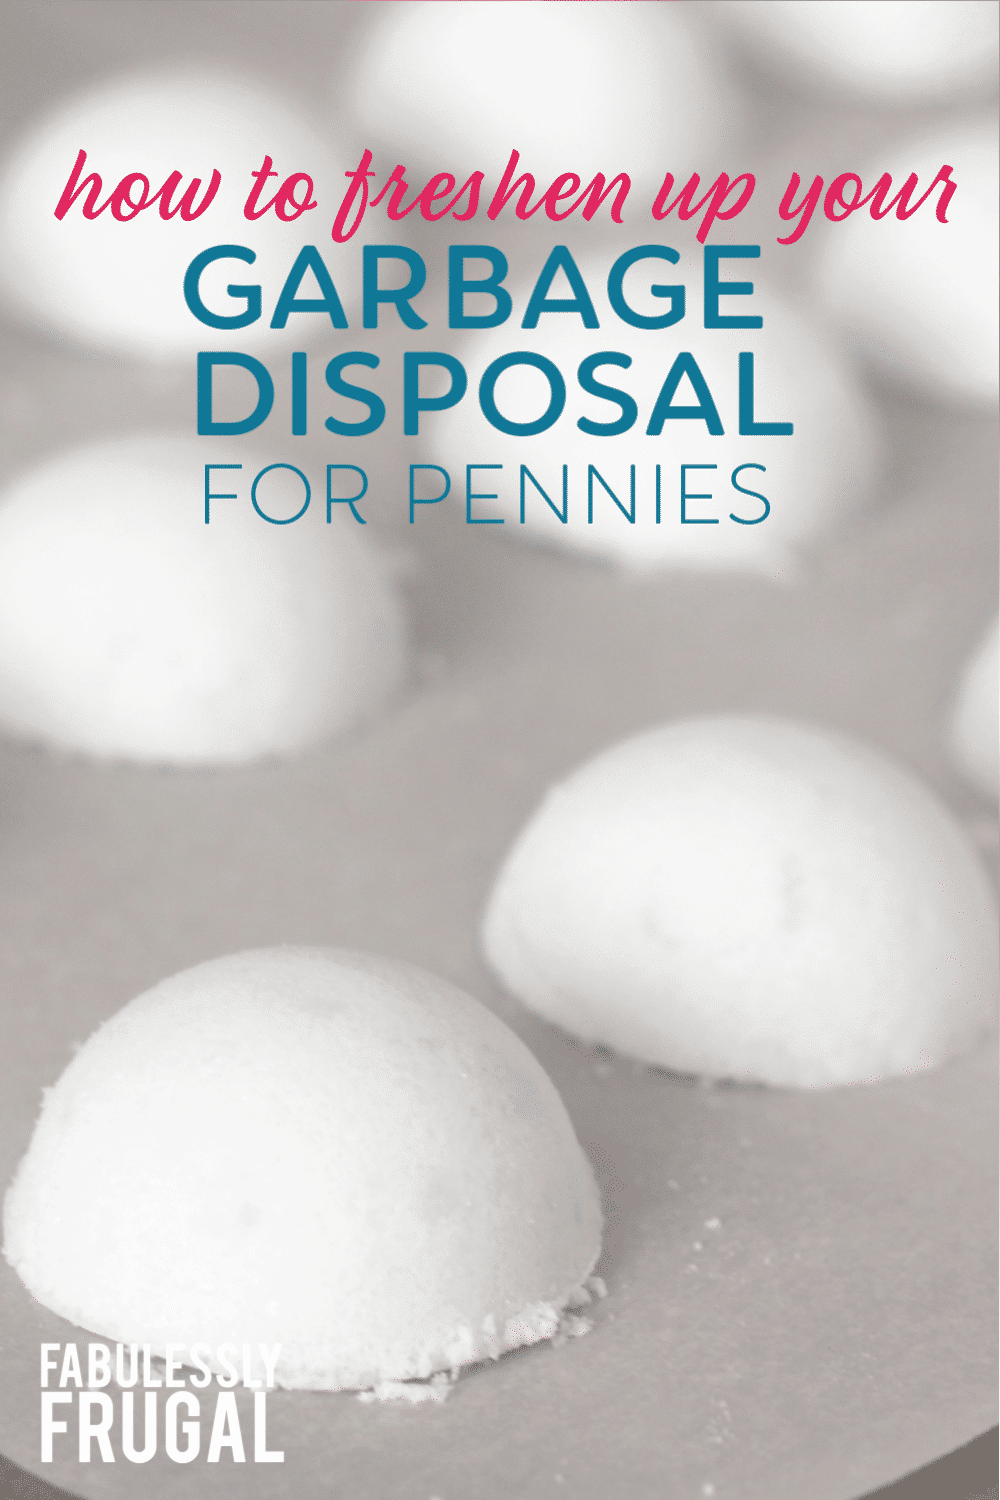 How to clean garbage disposal for pennies